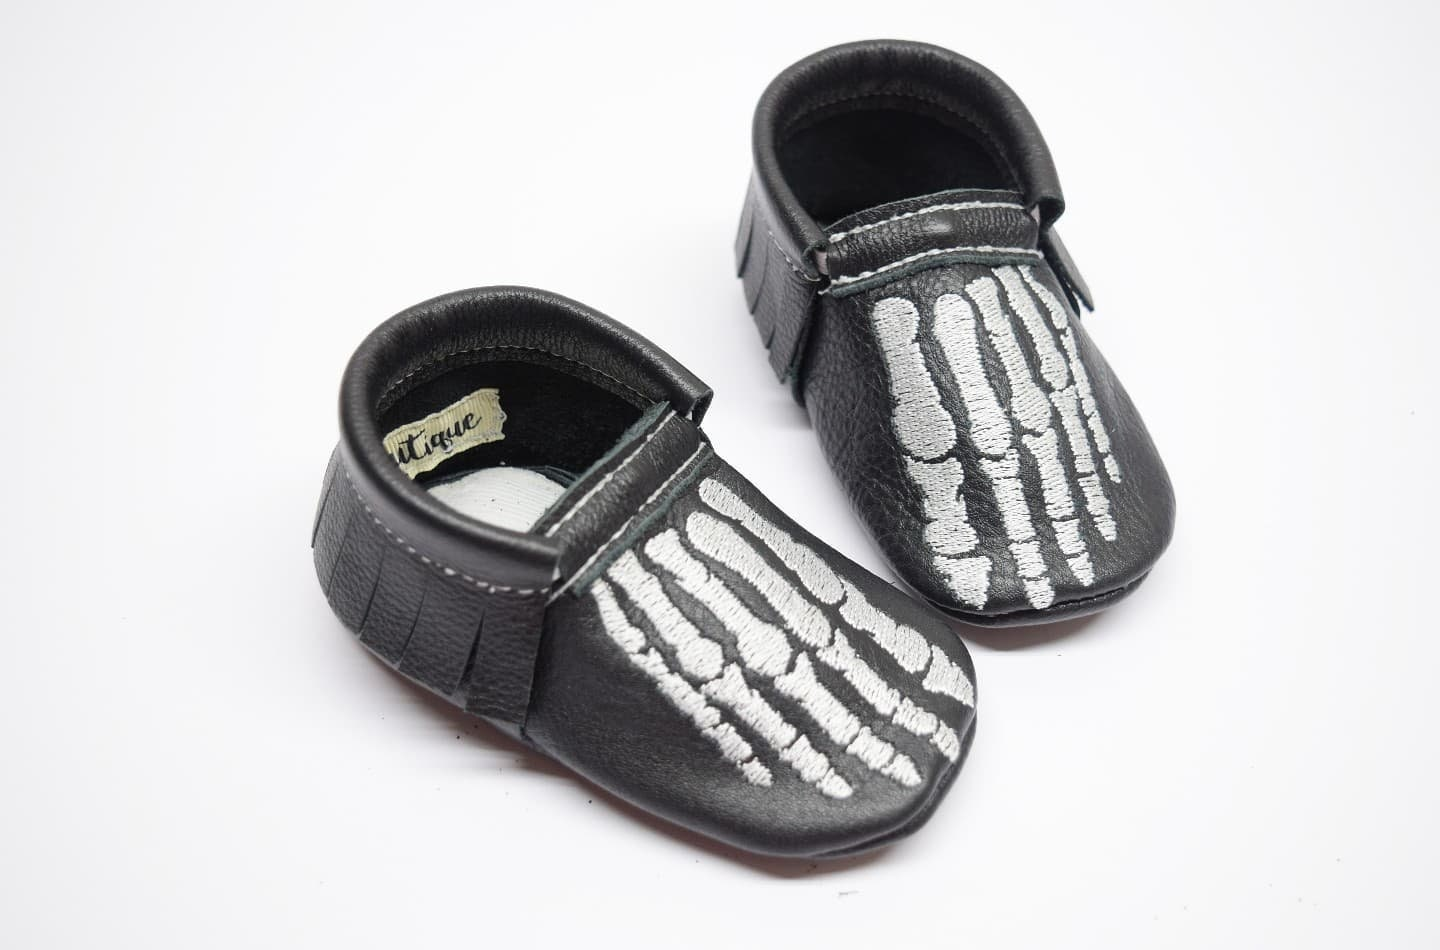 Skeleton fingers moccs, halloween moccs, baby moccs, black baby moccasins, leather moccs, black moccs, moccs, skeleton, halloween shoes, 967255